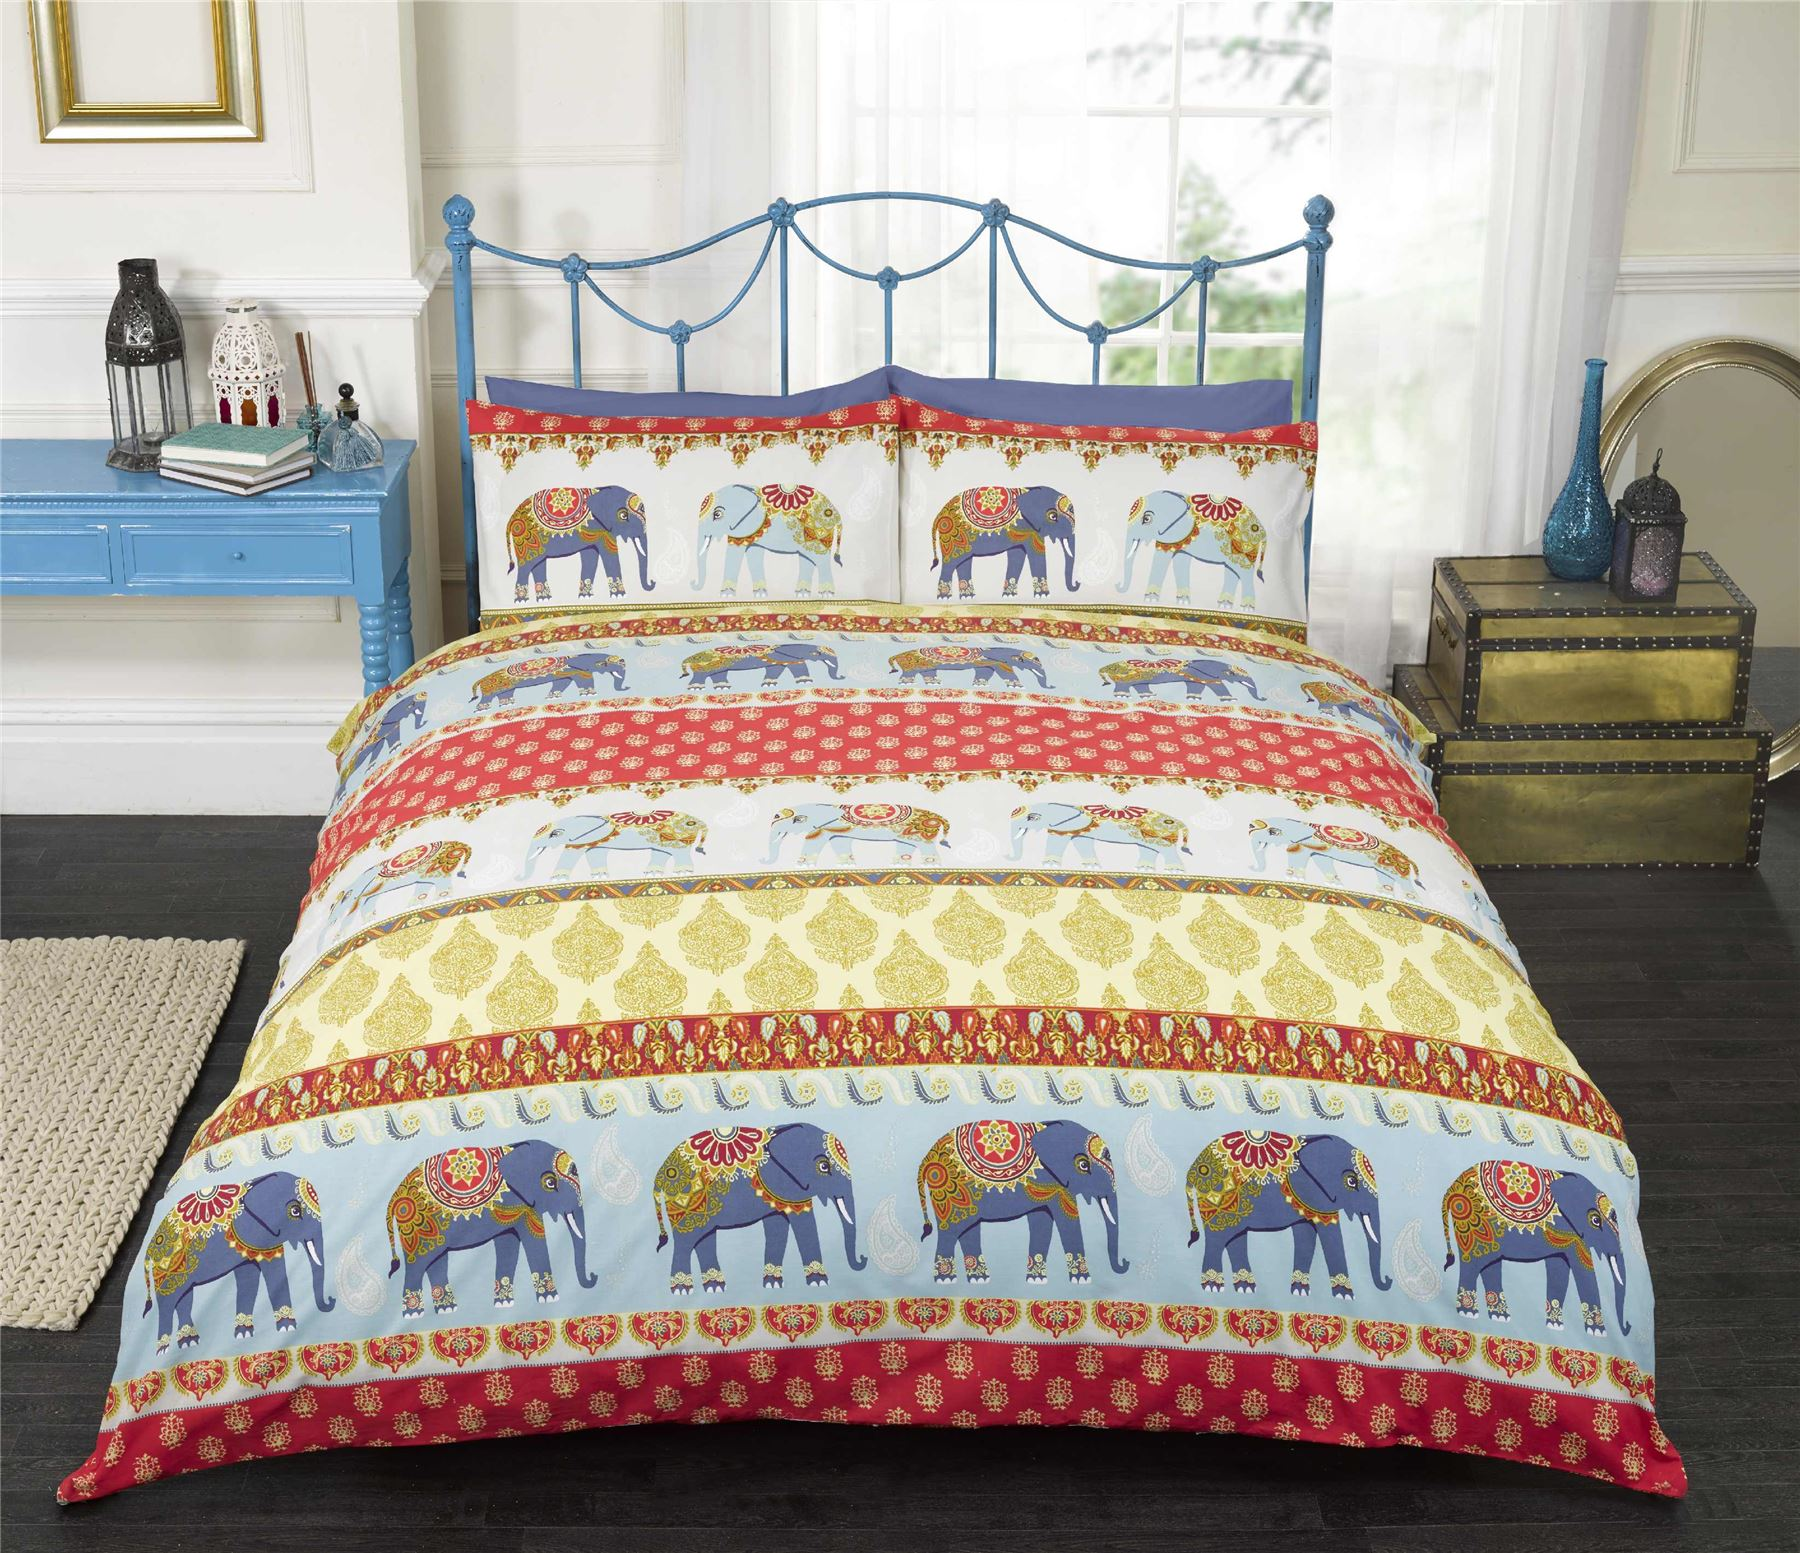 Red Indian Style Elephant Duvet Cover & Pillowcase Bedding Bed Sets